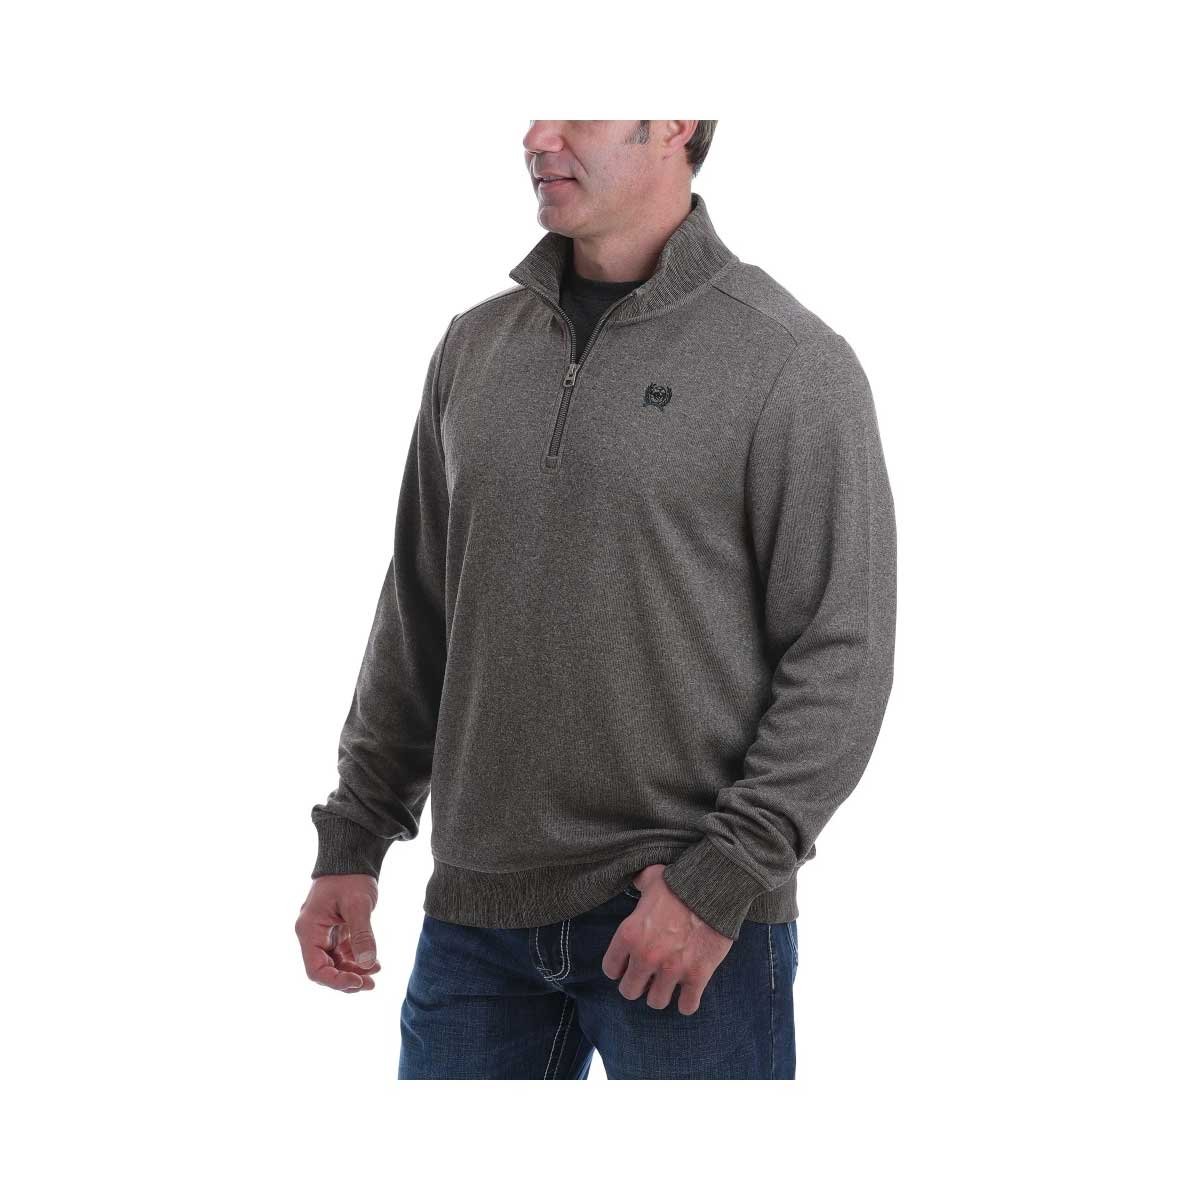 Cinch Men's 1/4 Zip Sweater Knit Pullover Sweatshirt - Brown